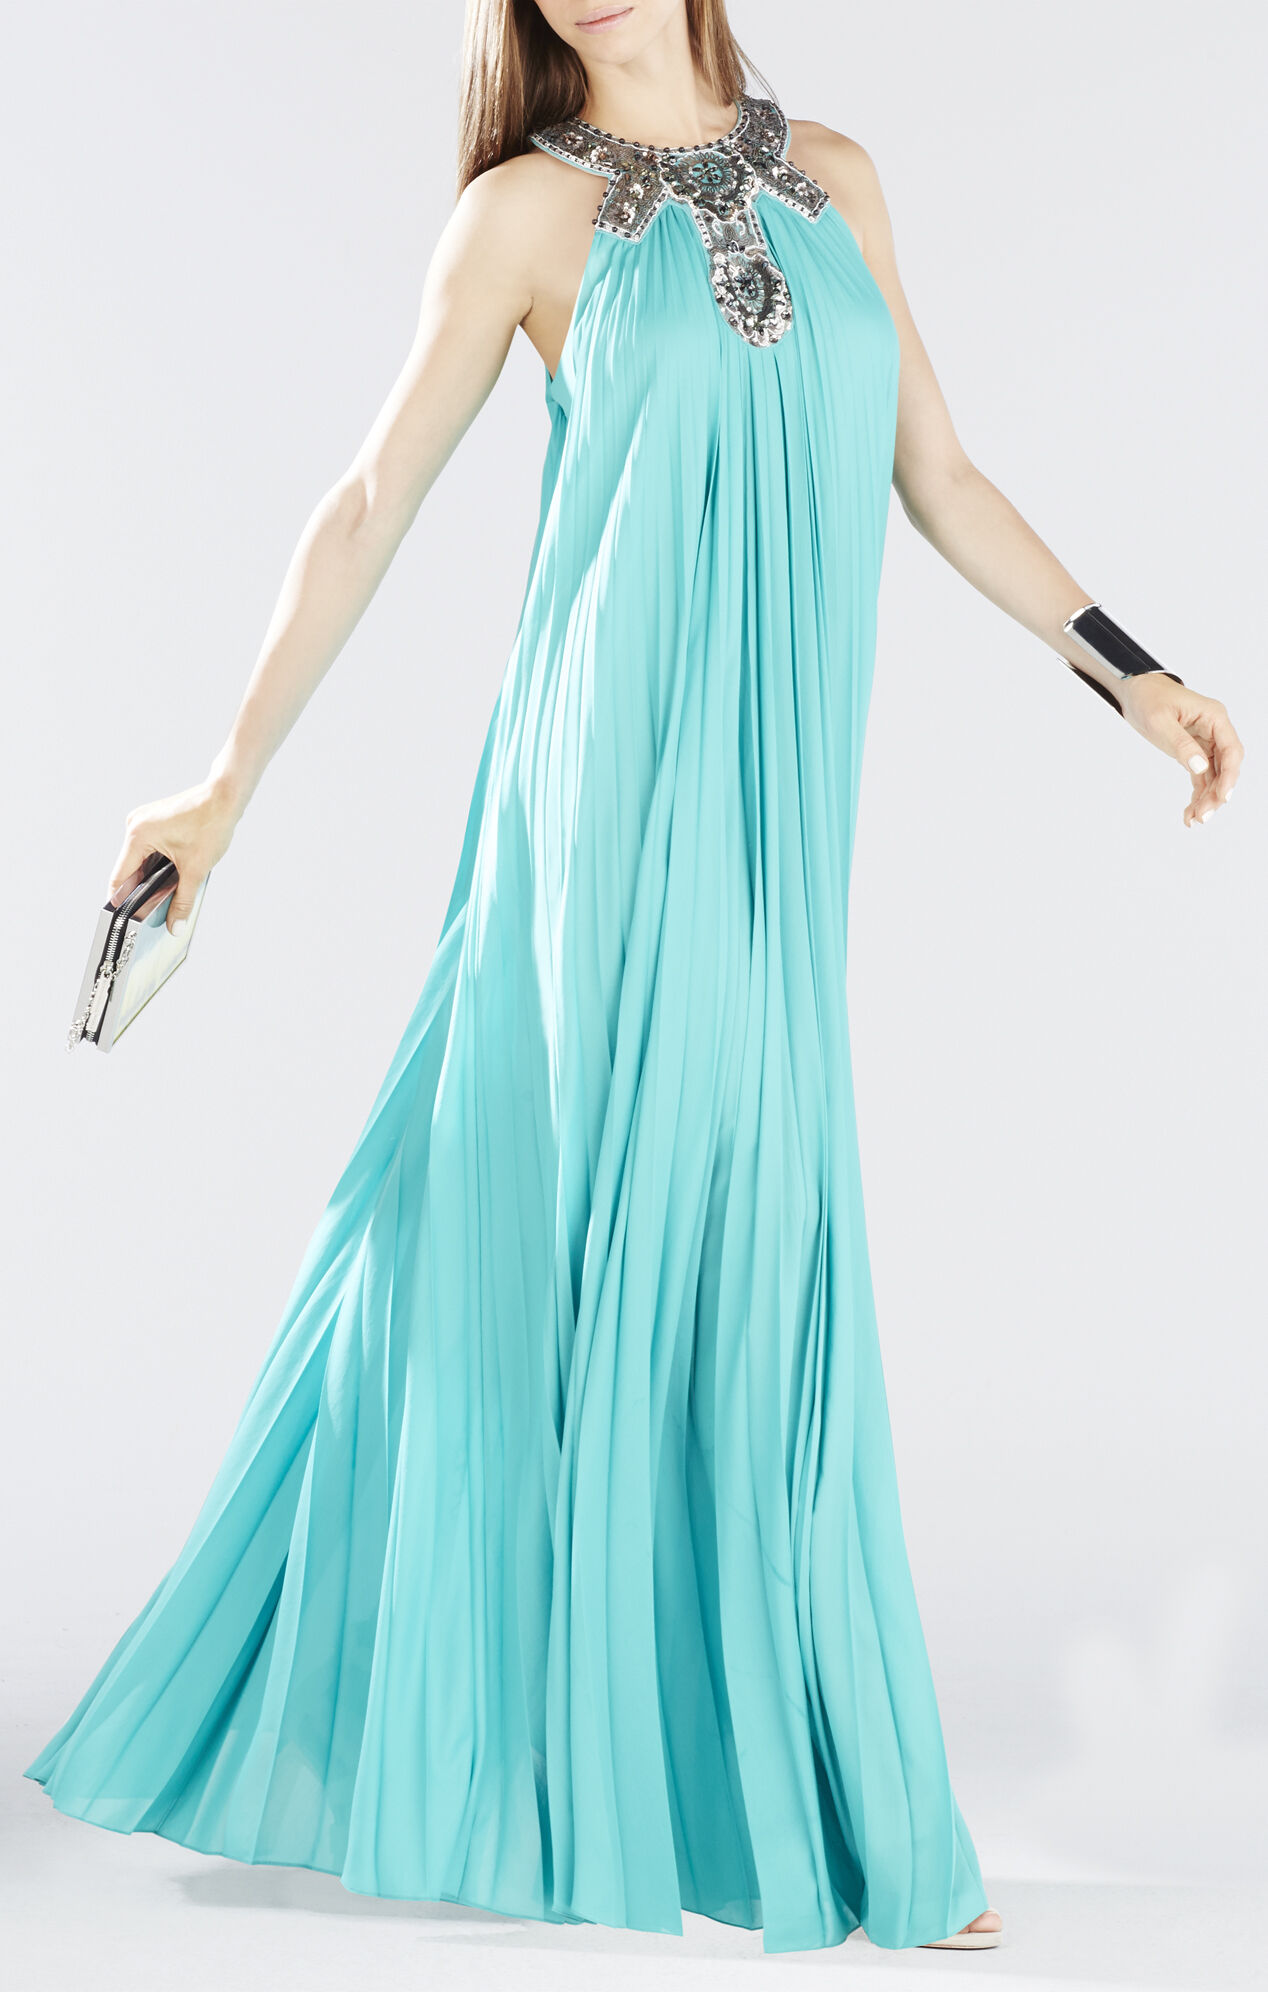 how to turn up a pleated dress